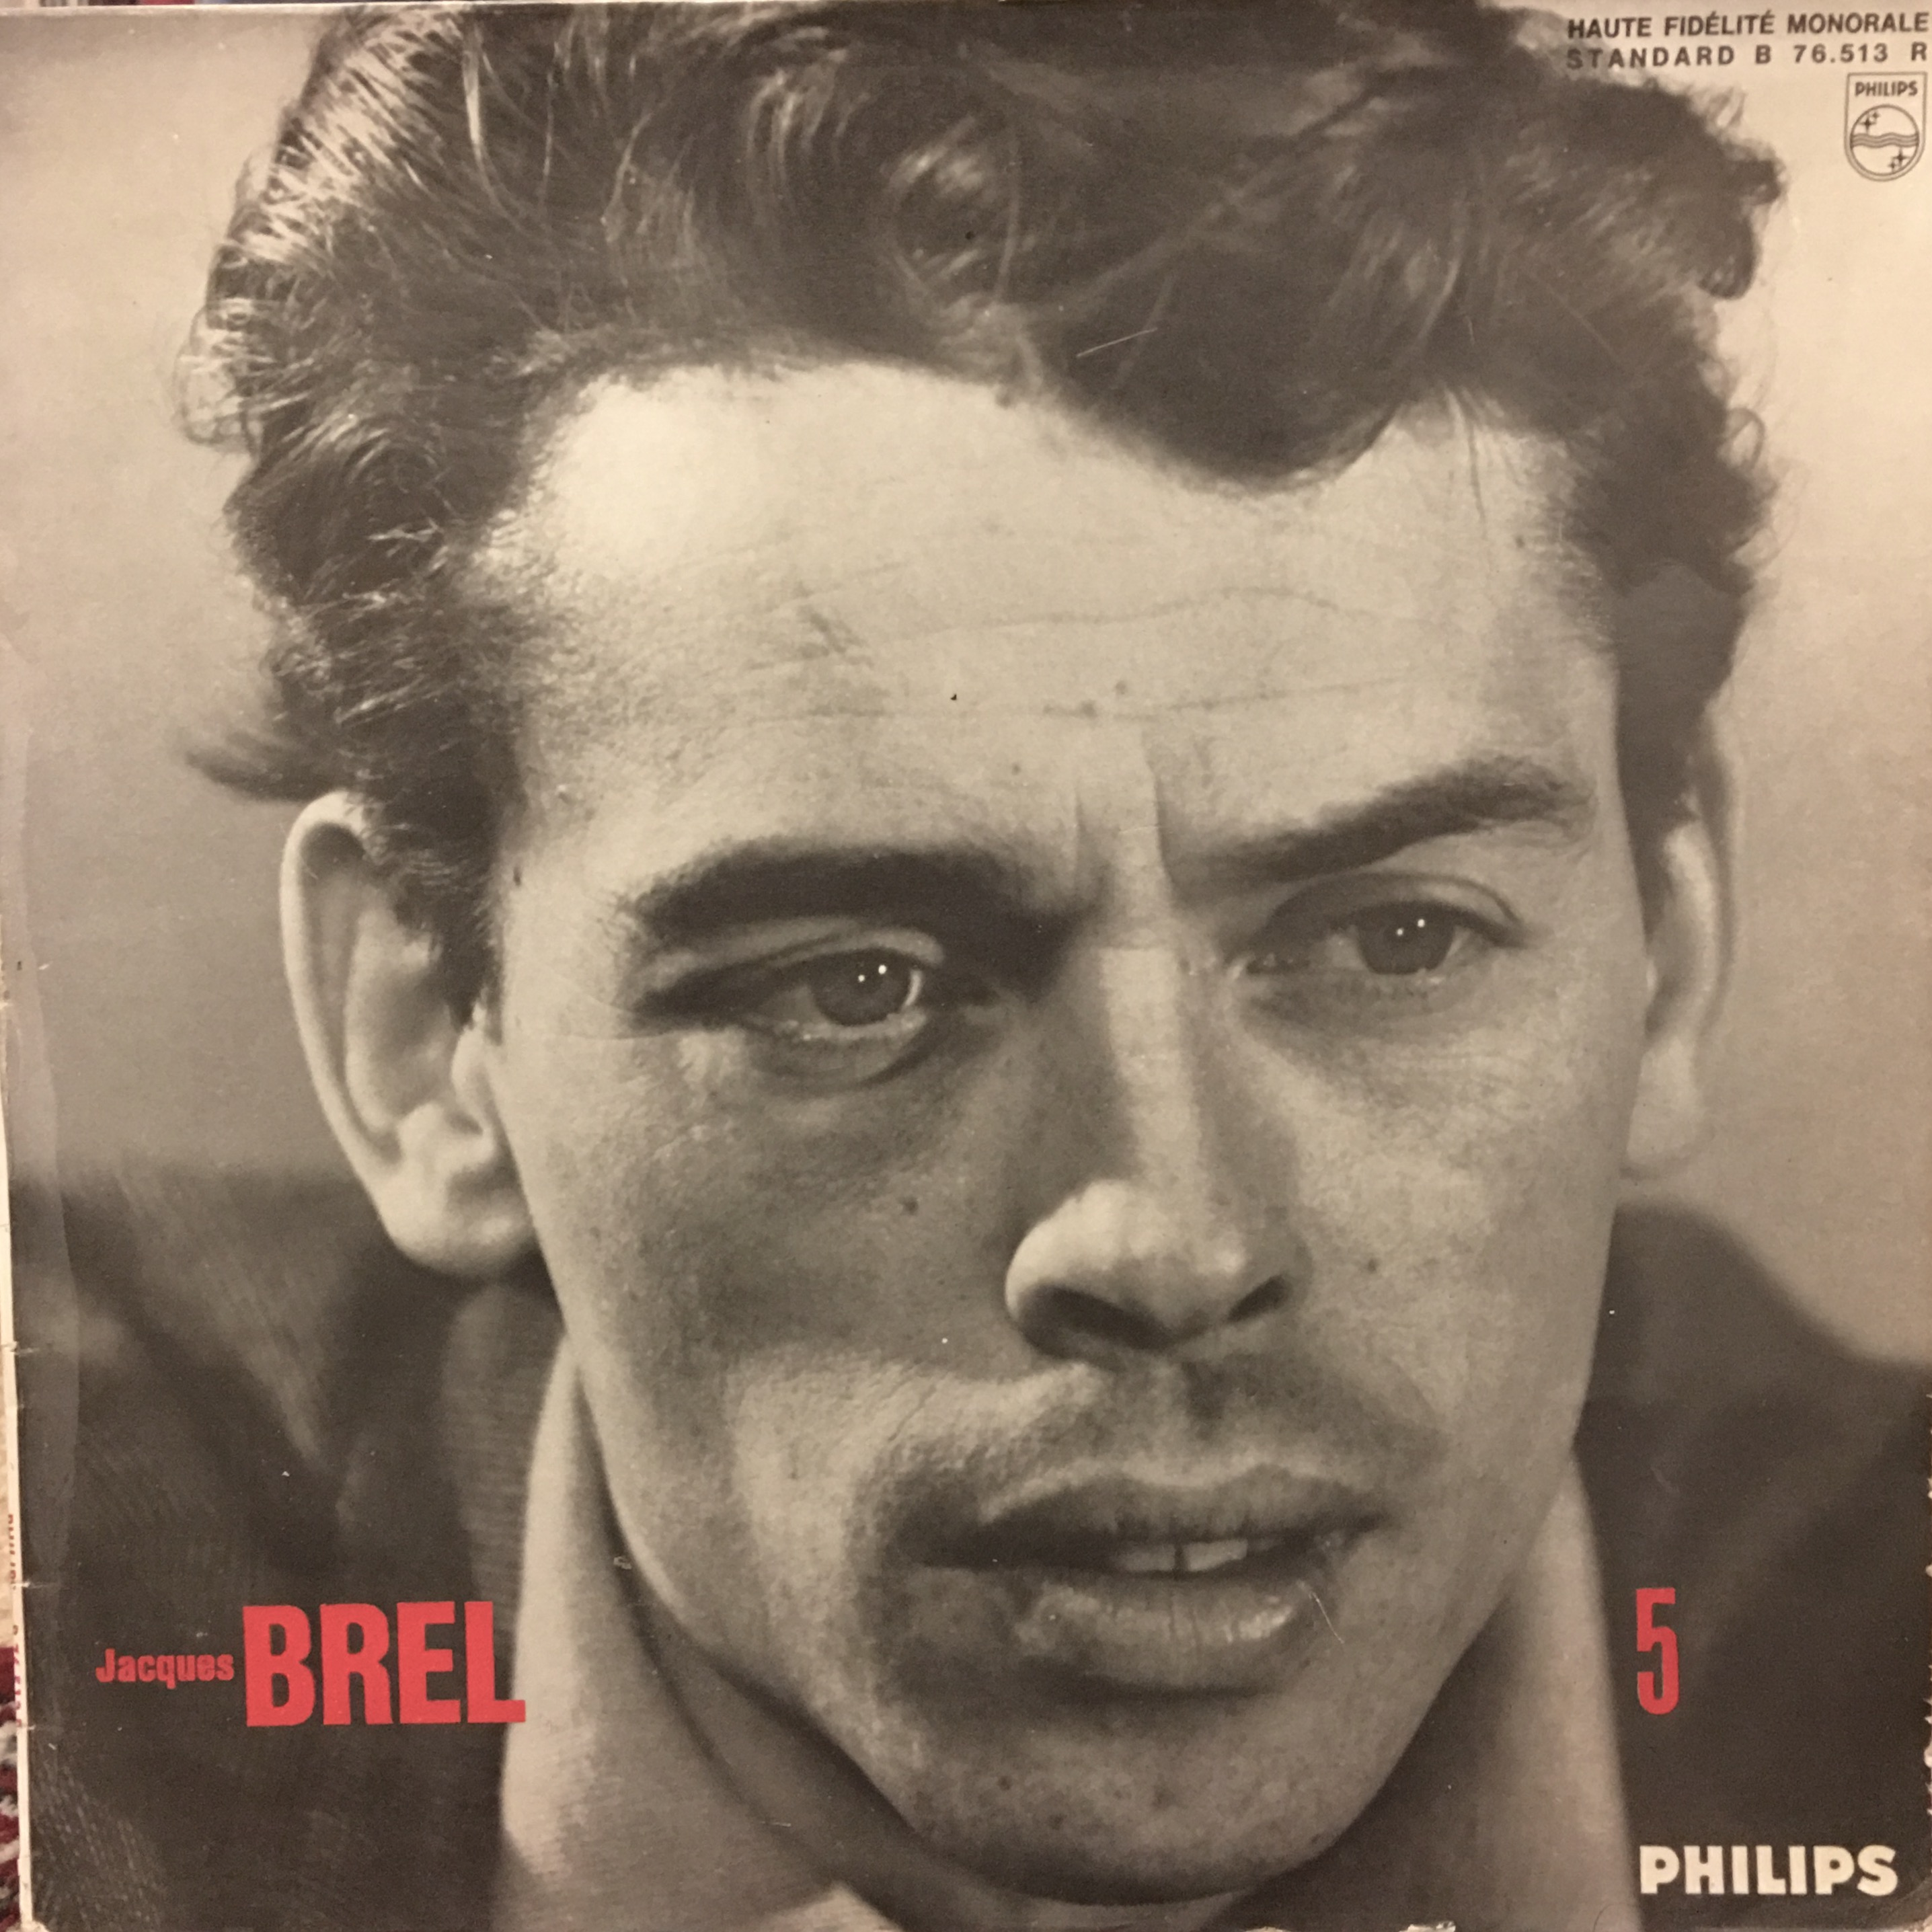 Jacques Brel, No. 5 (Marieke)